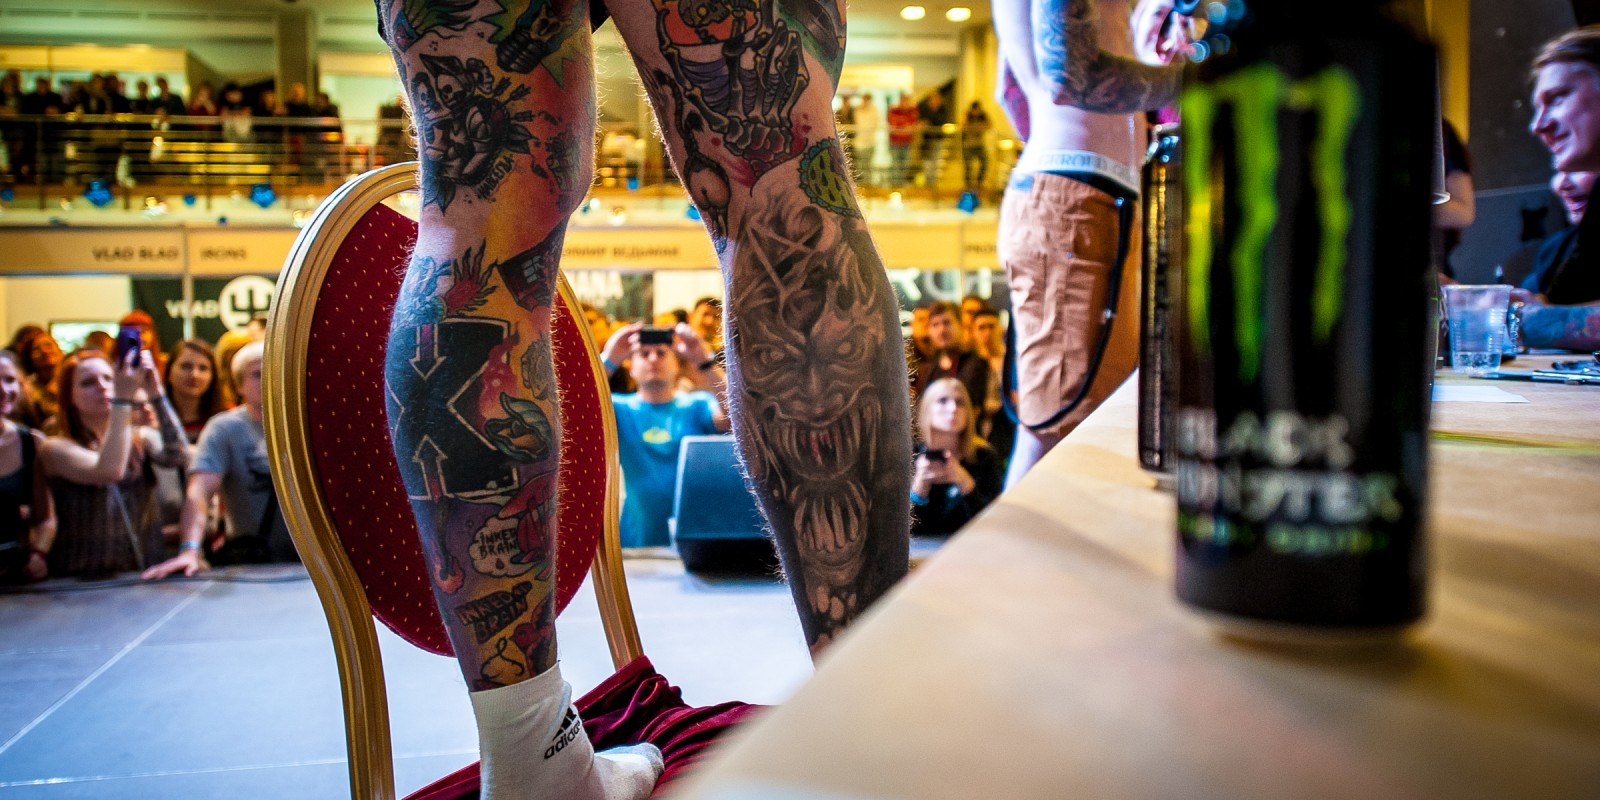 Images from Ural Tattoo convention